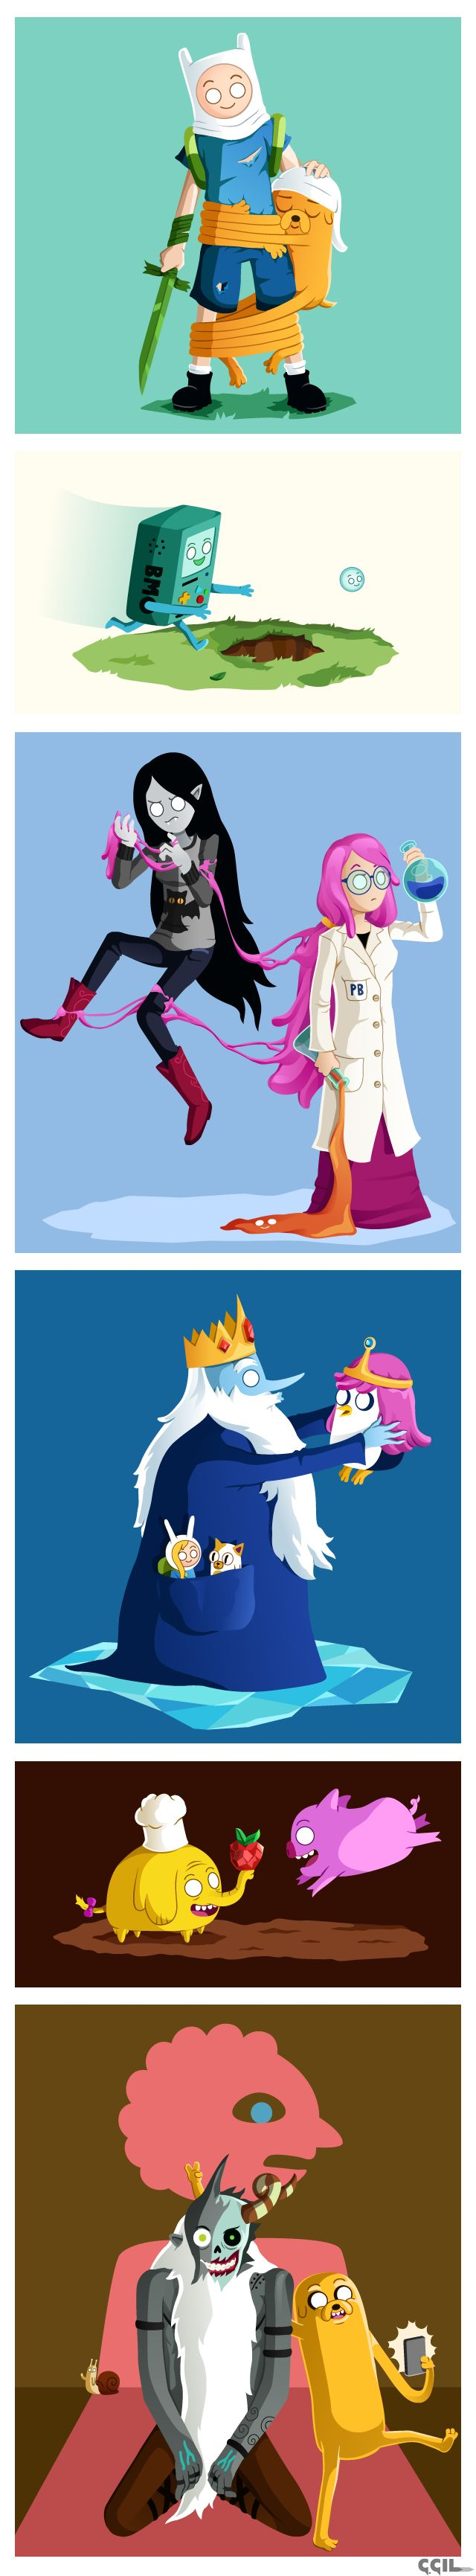 Adventure Time by cecile-appert